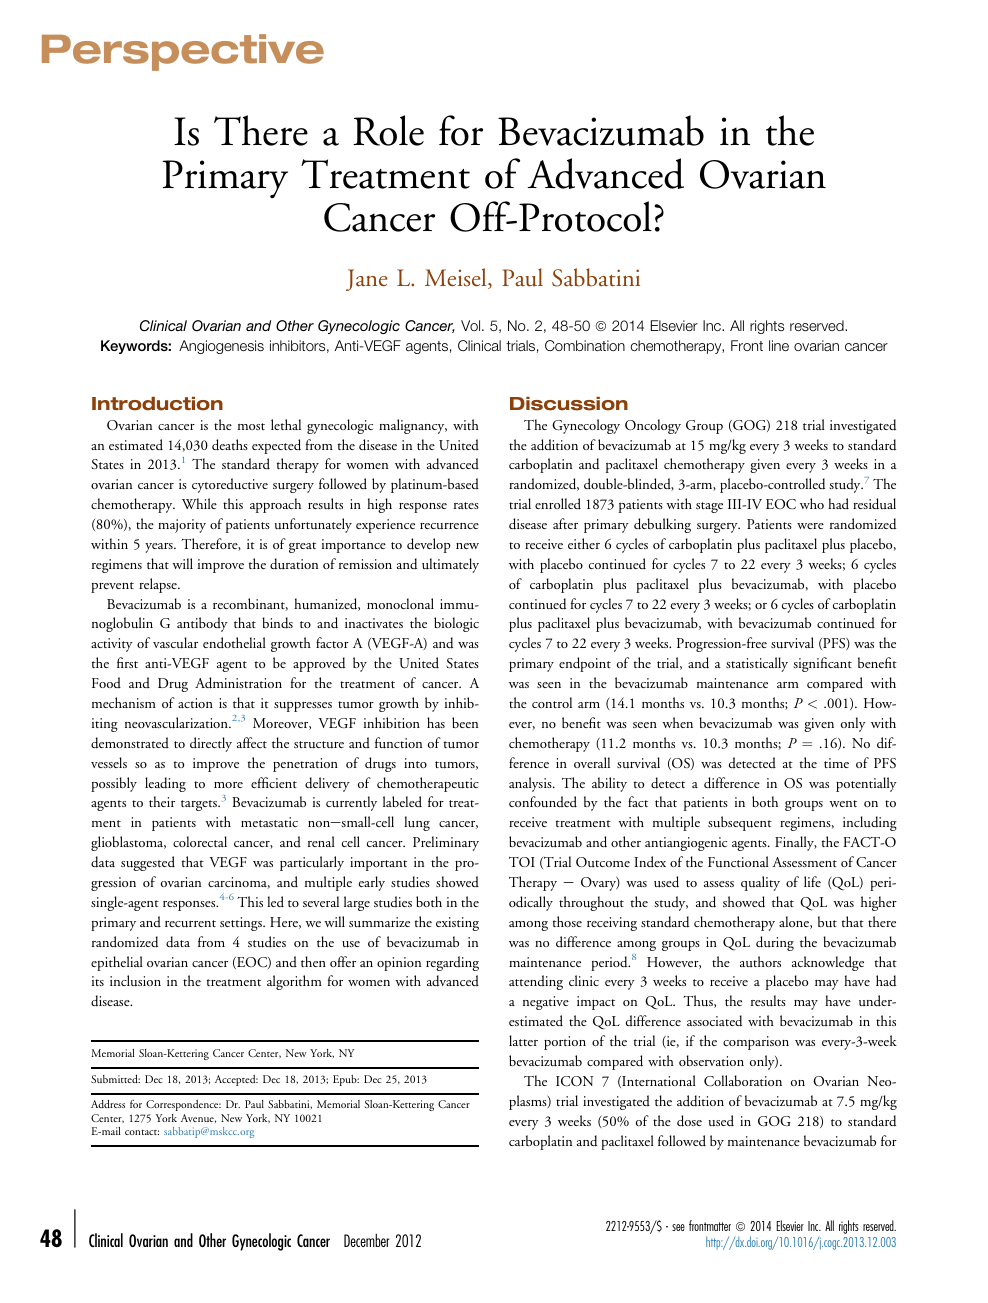 Is There A Role For Bevacizumab In The Primary Treatment Of Advanced Ovarian Cancer Off Protocol Topic Of Research Paper In Clinical Medicine Download Scholarly Article Pdf And Read For Free On